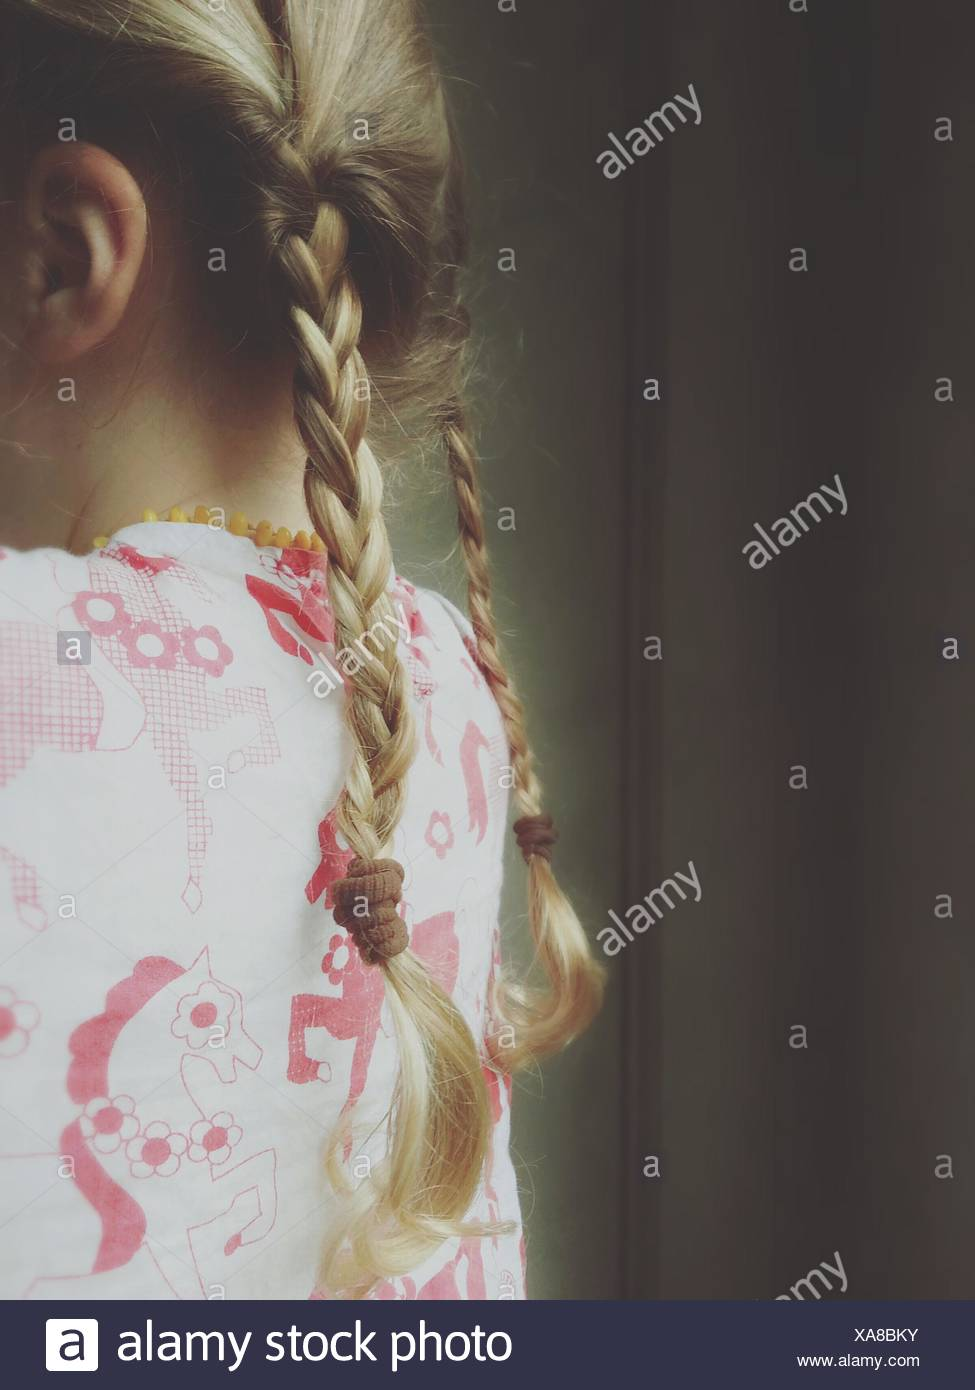 Close-up of a Girl's tresses Photo Stock